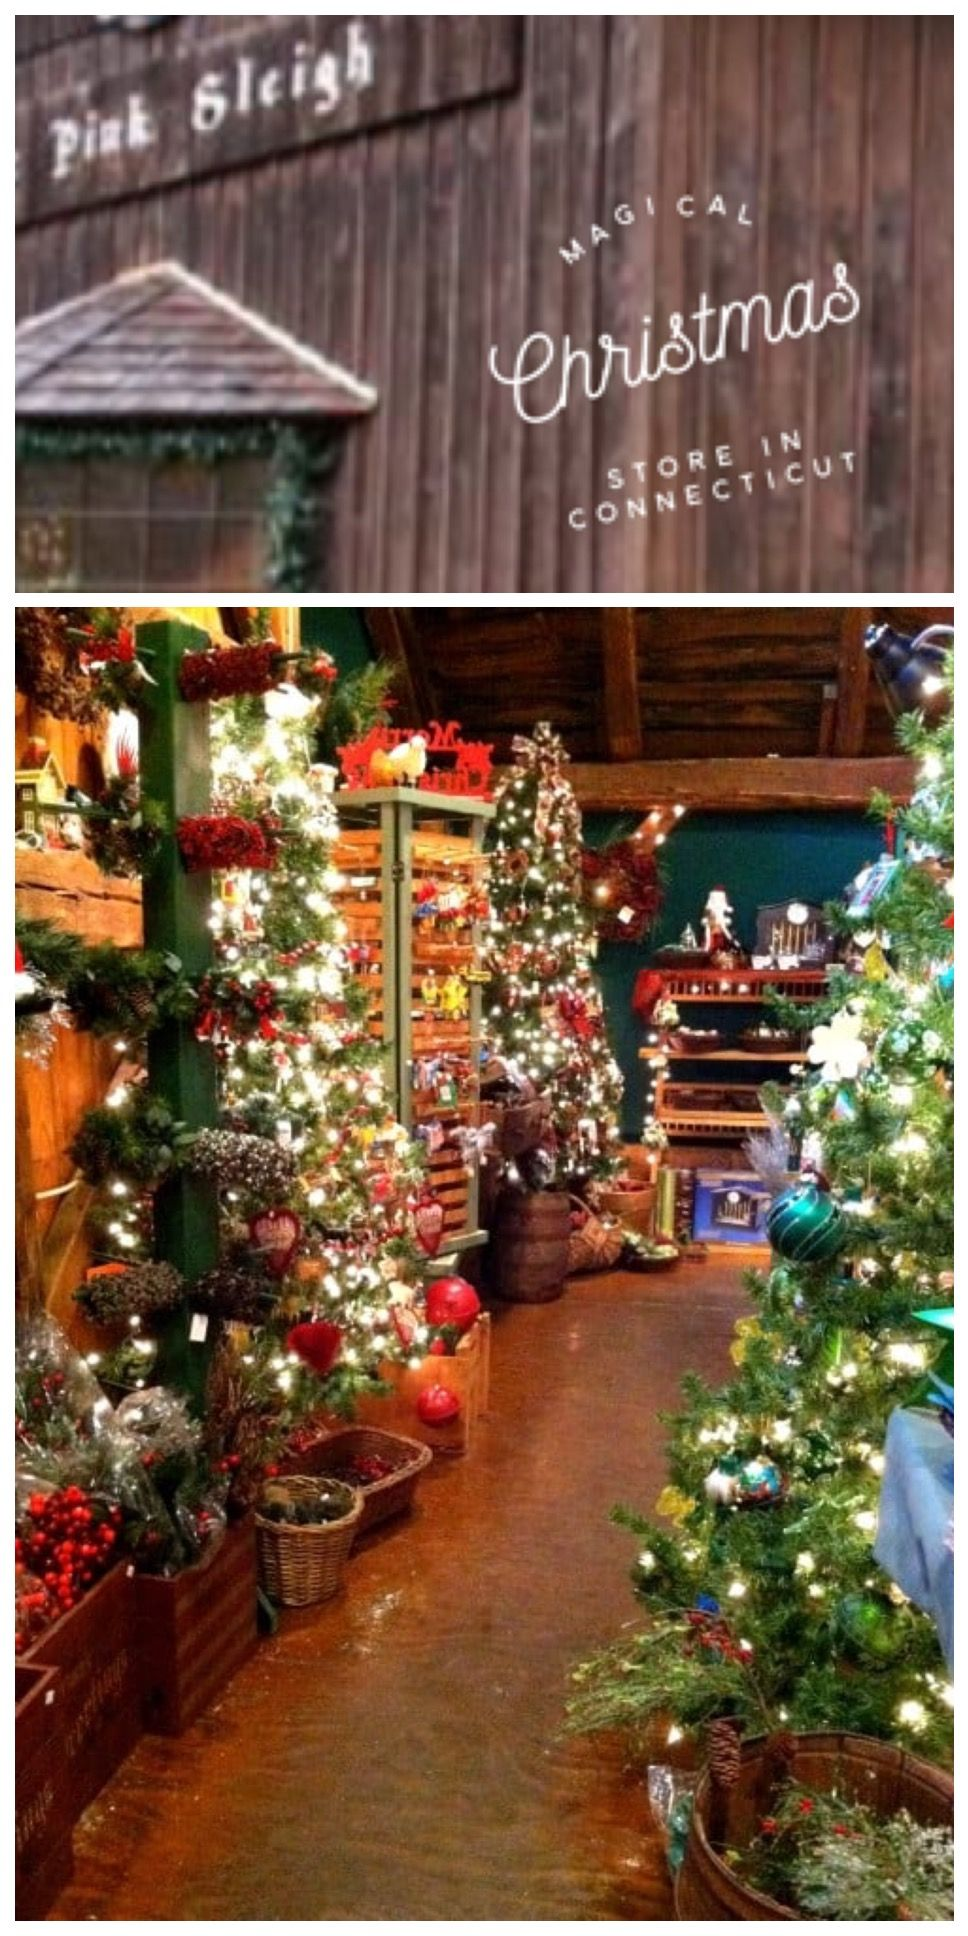 The Christmas Store In Connecticut That S Simply Magical Christmas In England Christmas In Connecticut Christmas Store